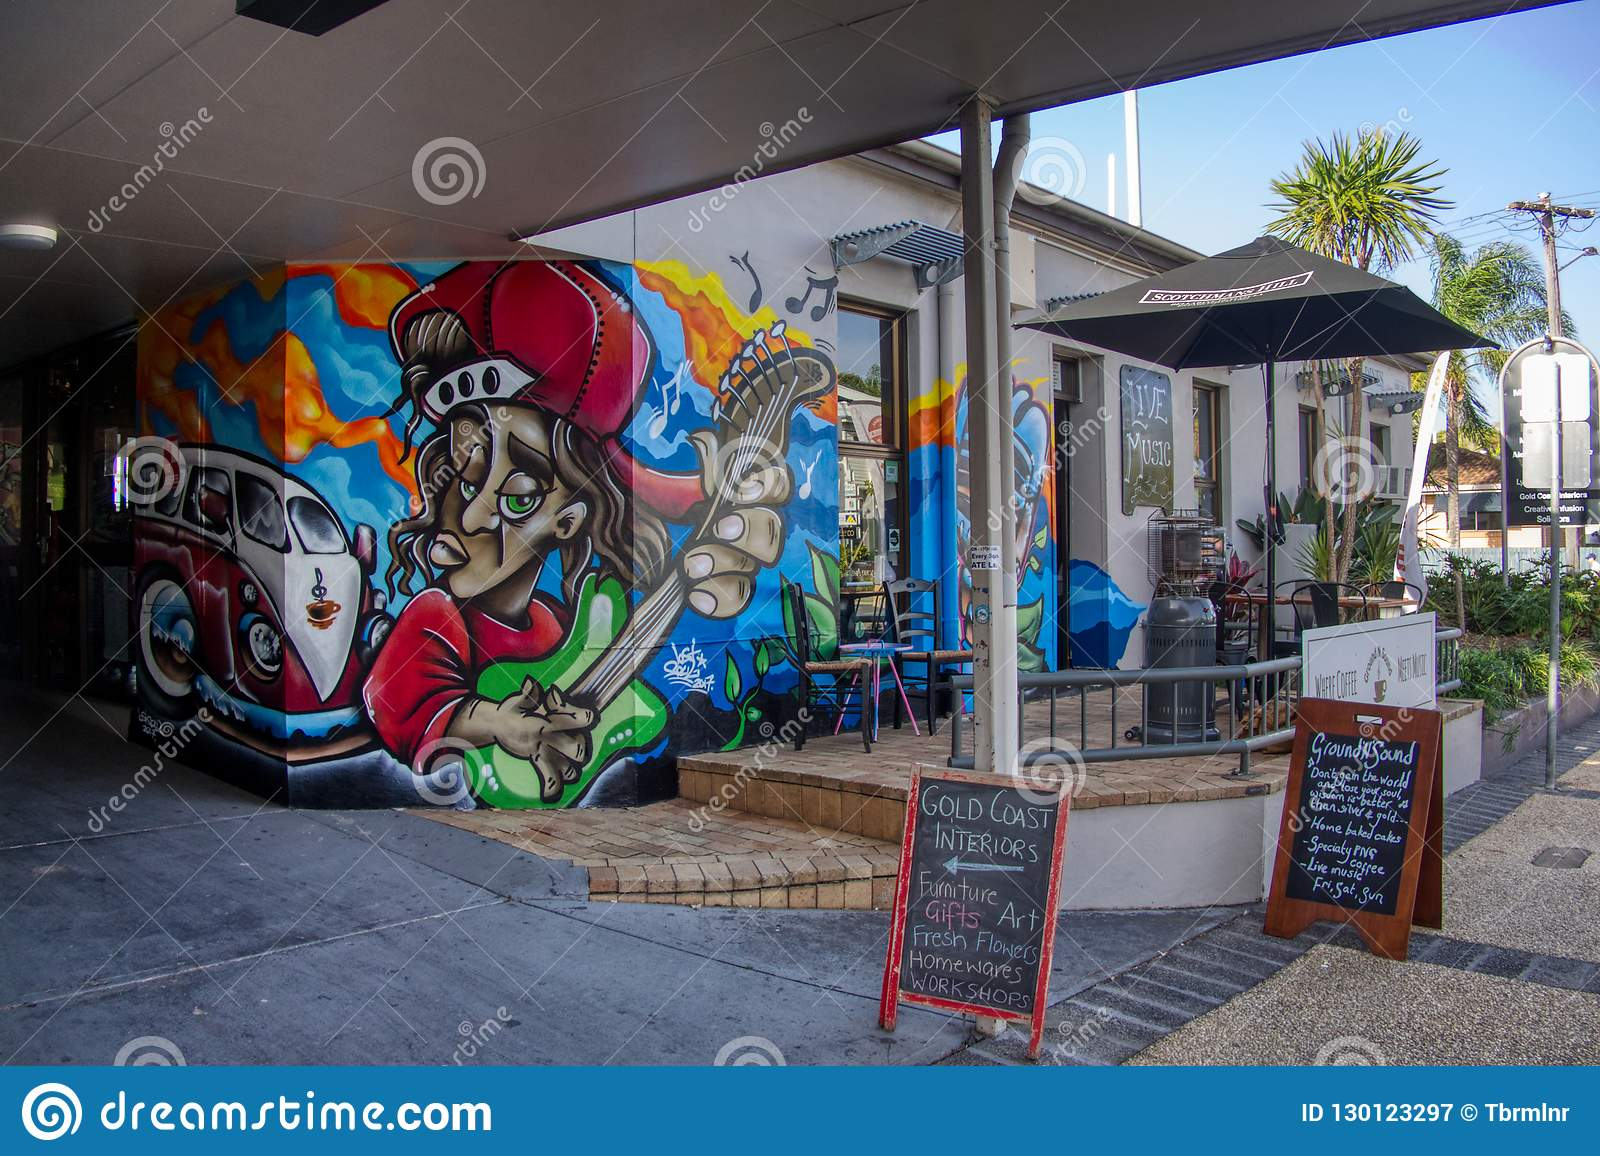 Gold Coast Queensland Australia October 20 2018 Mural Graffiti Wall Art On Front Road Side Entrance Of A Coffee Shop Editorial Photography Image Of Mural Pattern 130123297